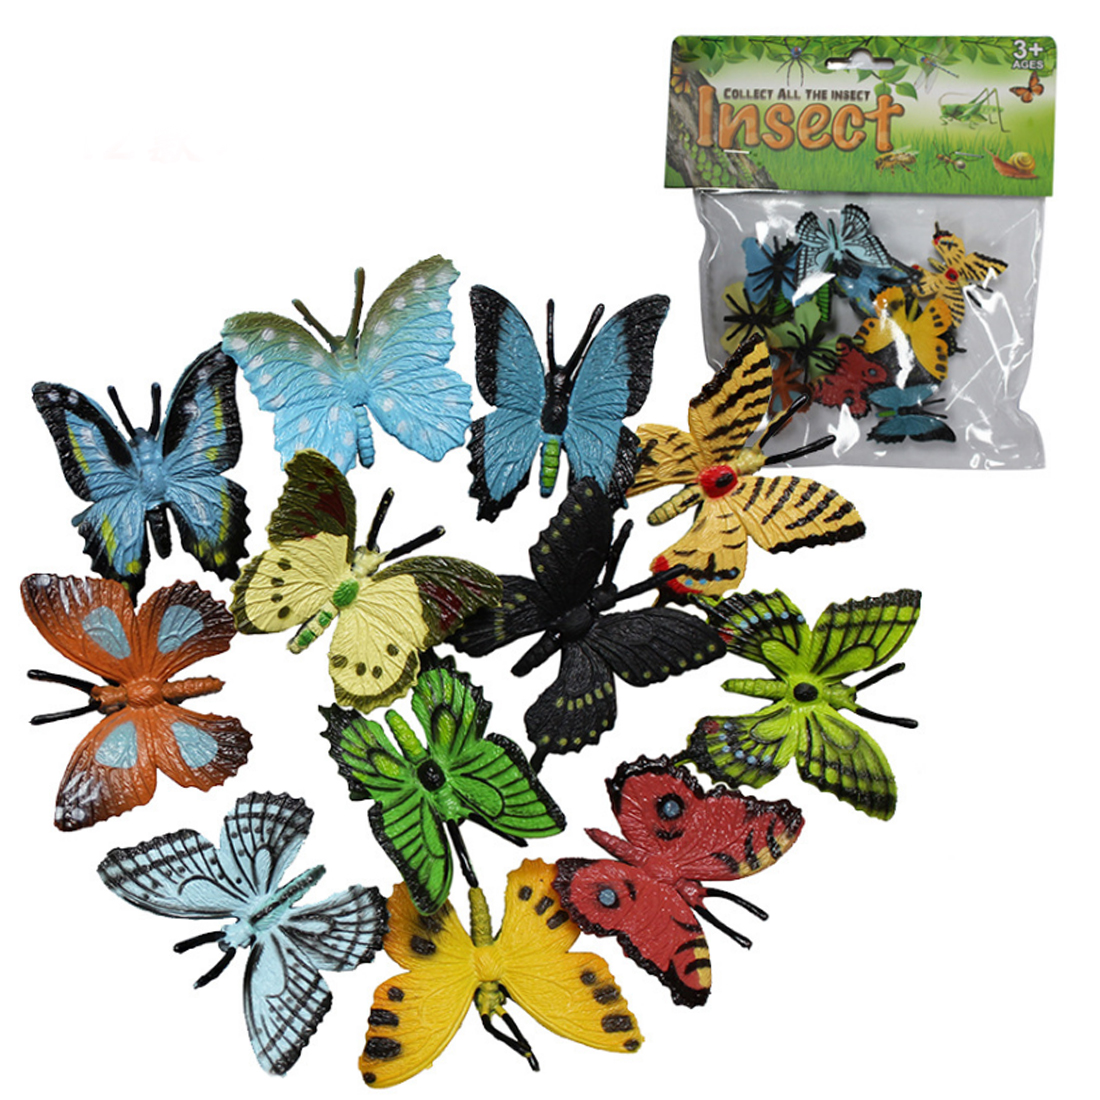 12Pcs Party Class Teaching Butterfly Model Kit Educational Toys For Children Learning Studying Biology Insects Toy Collection